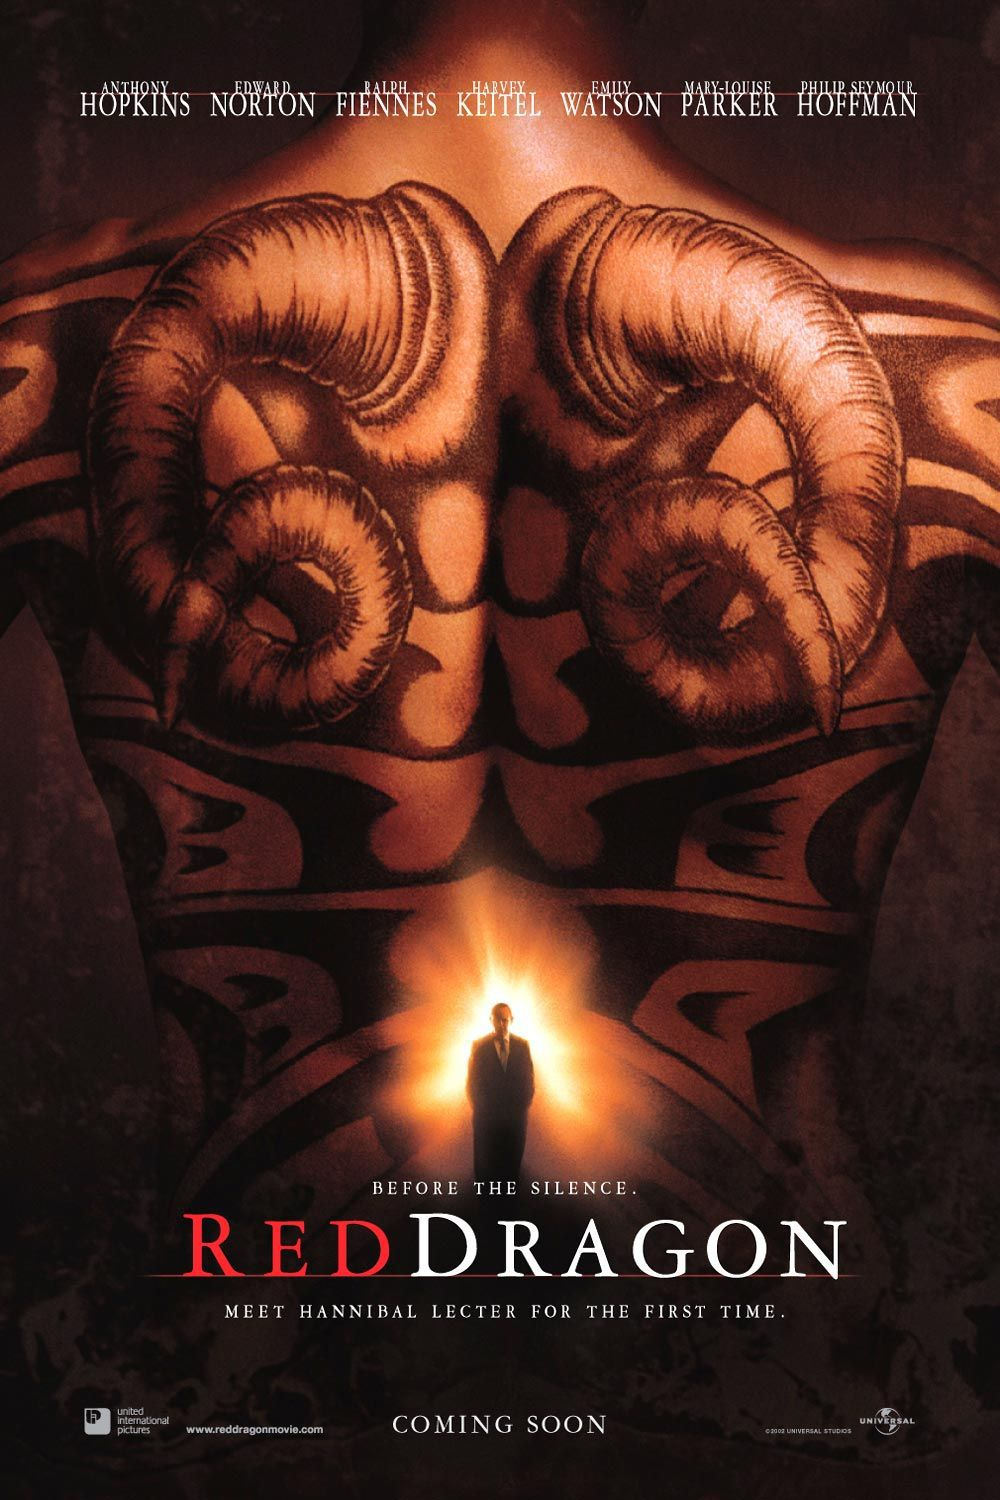 red dragon 2002 starring anthony hopkins edward norton